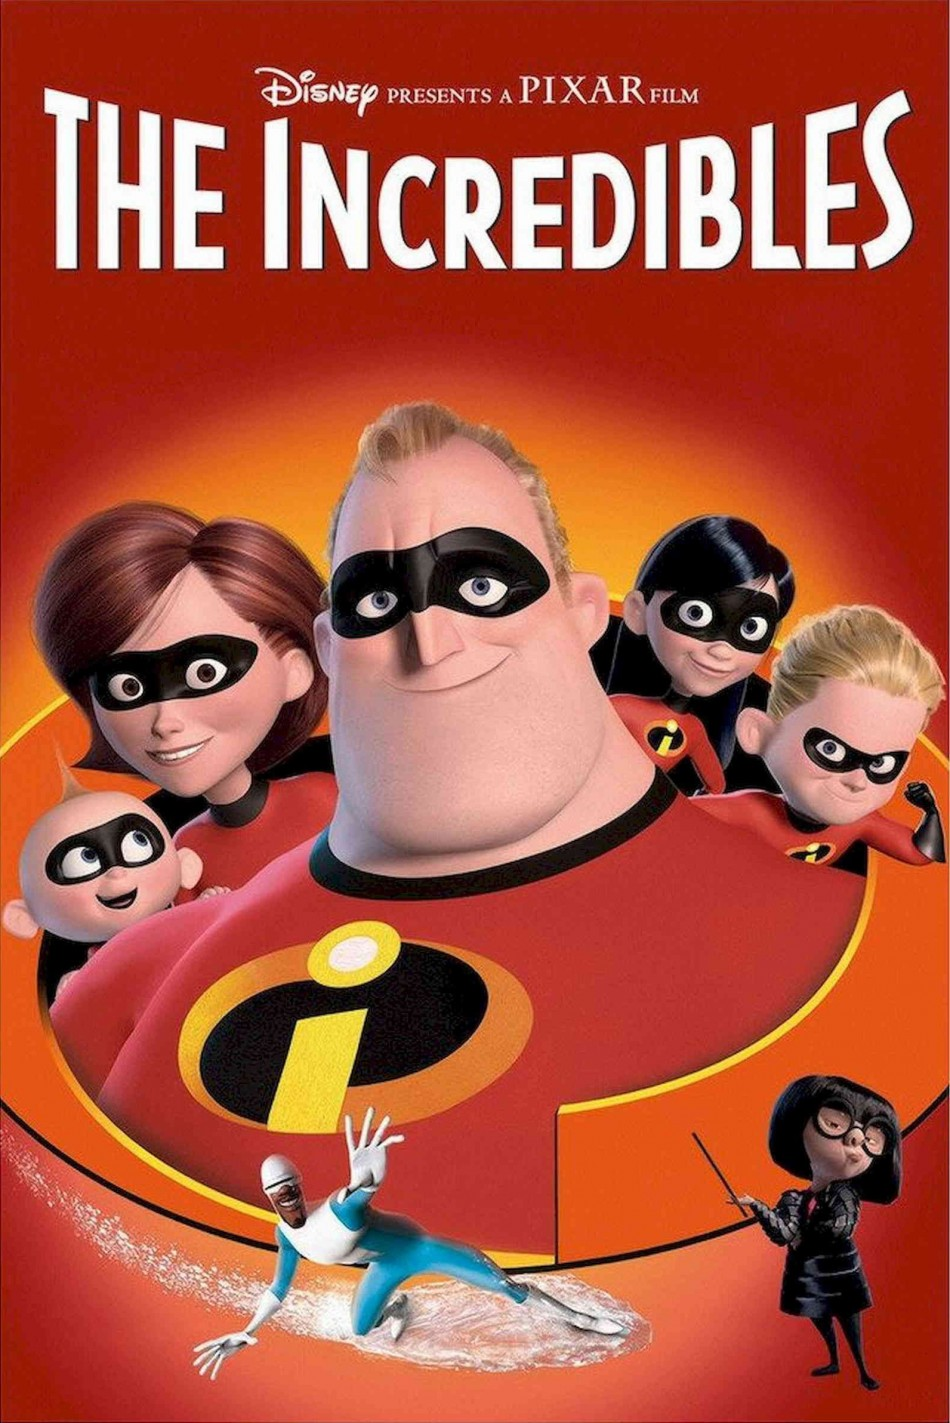 Film: The Incredibles